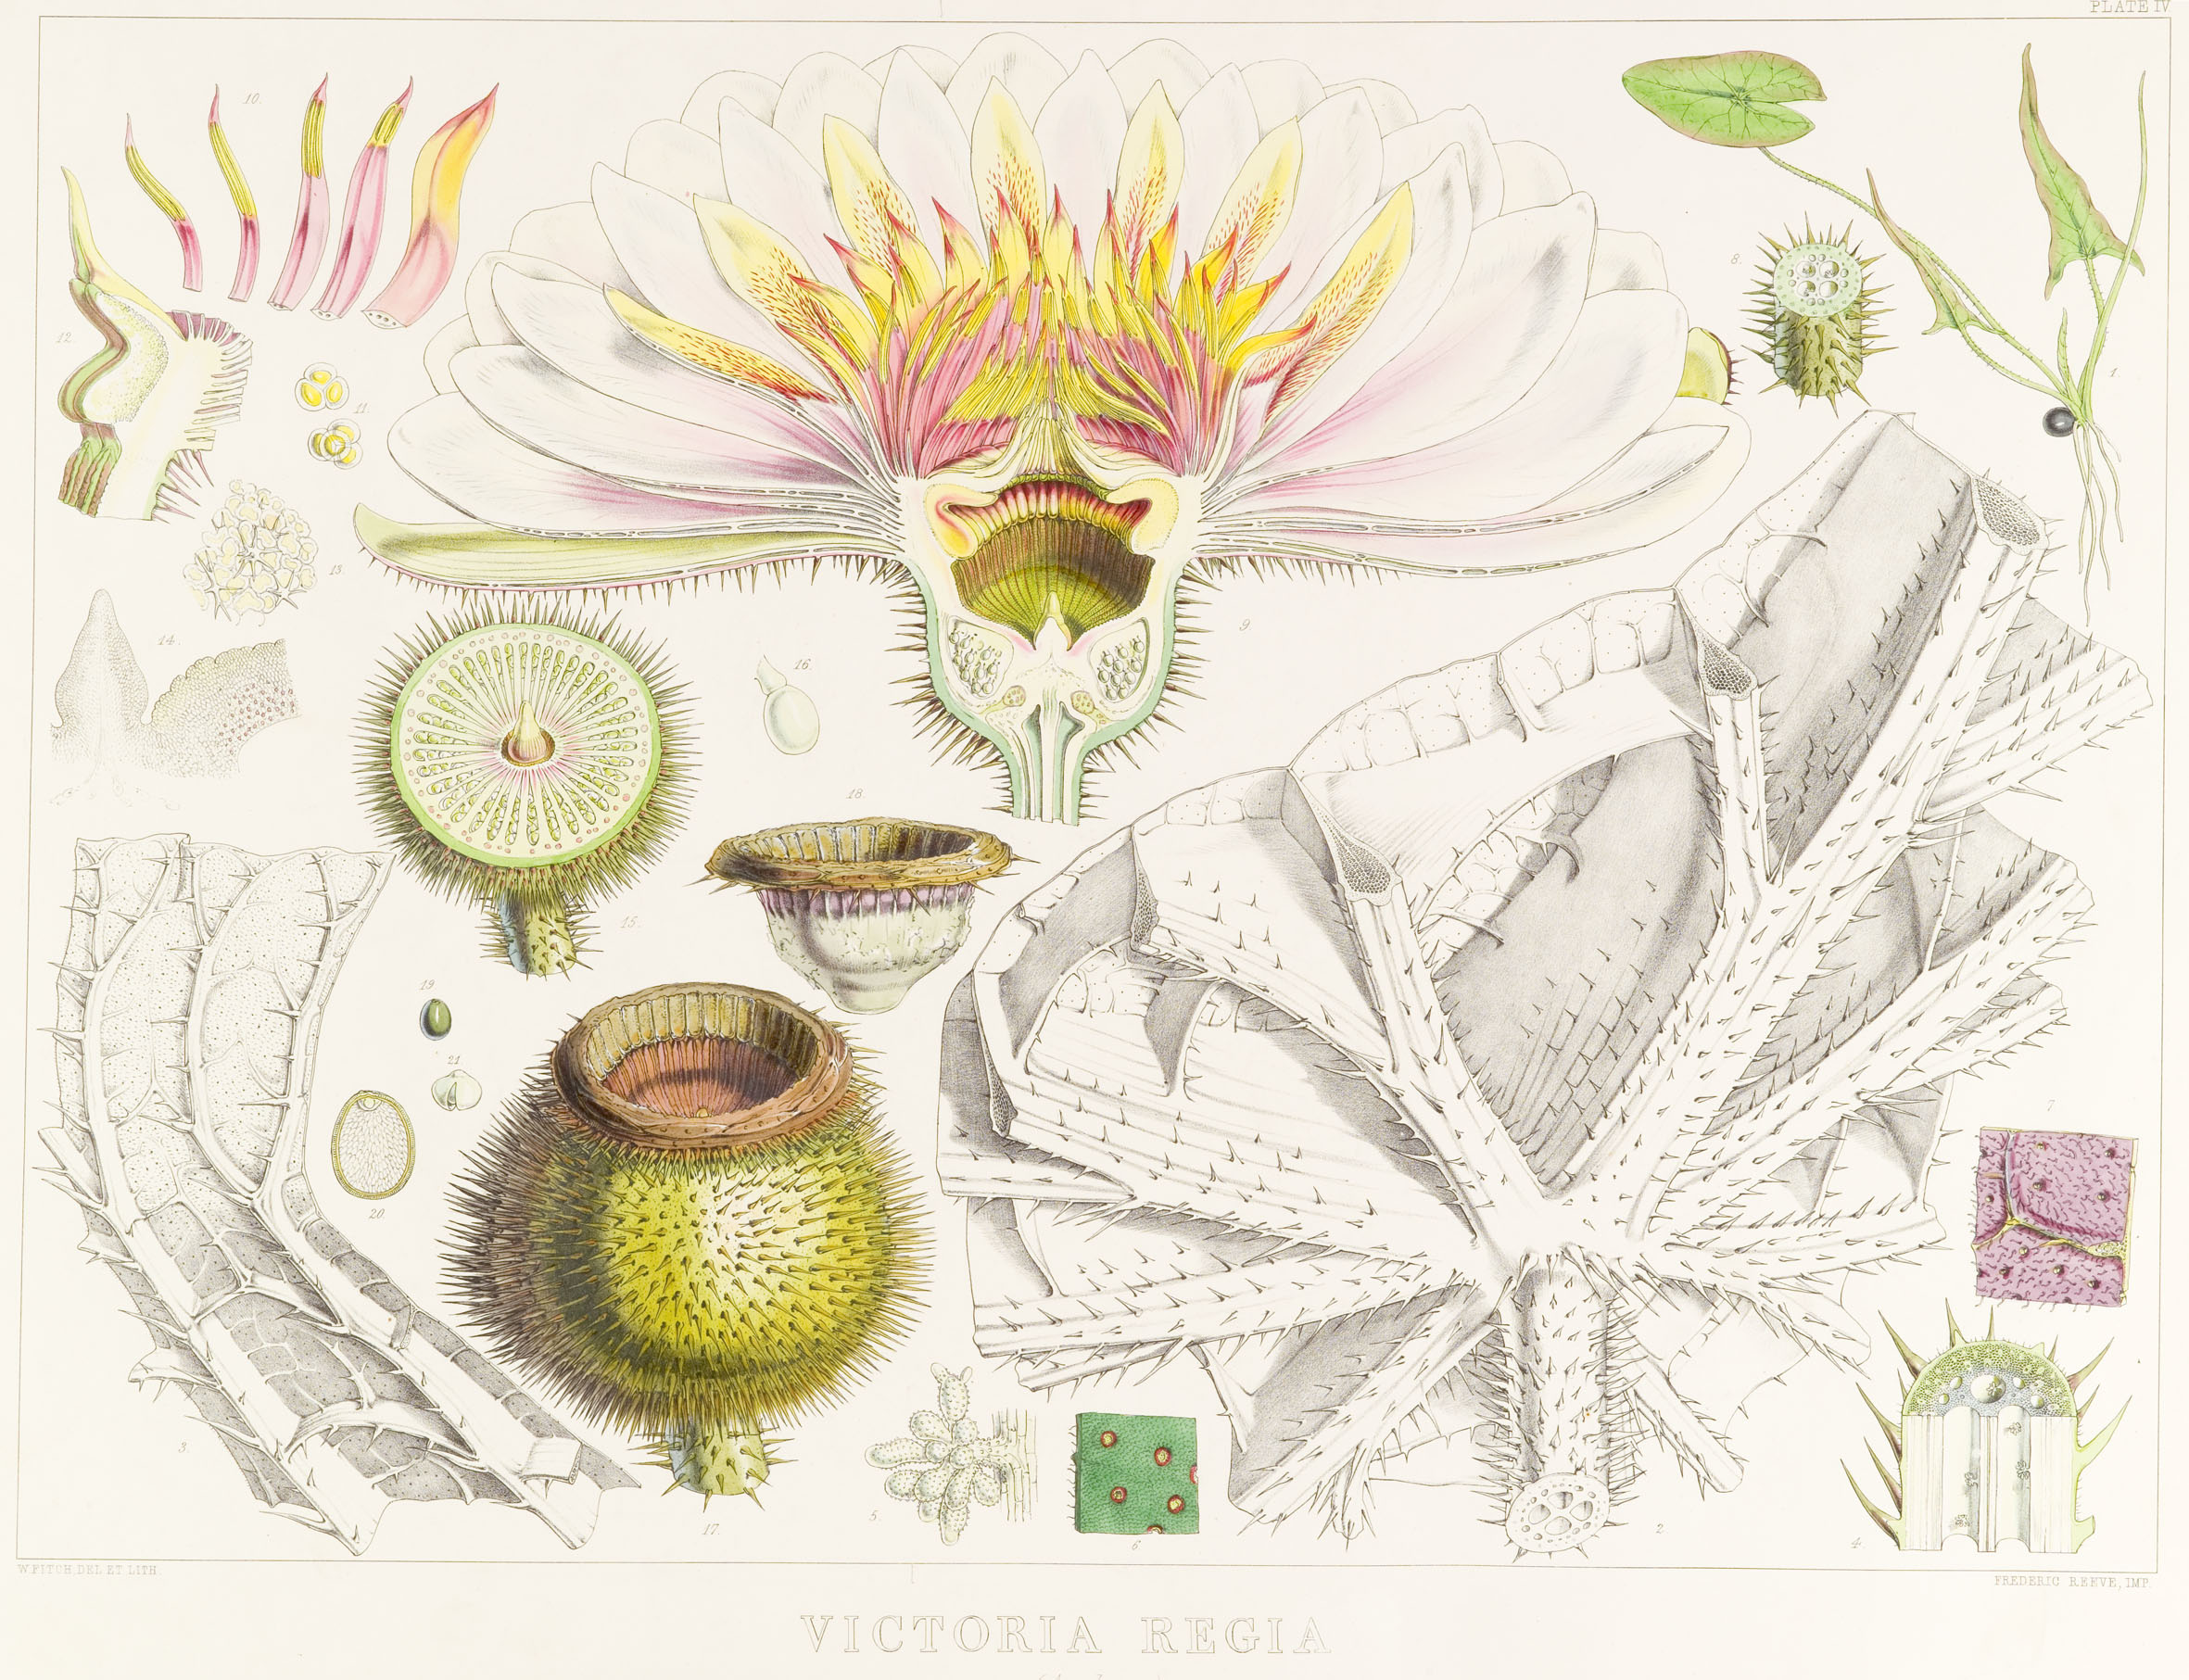 Photo of an iIlustration by Fitch of Victoria regia (now re-named Victoria amazonica).